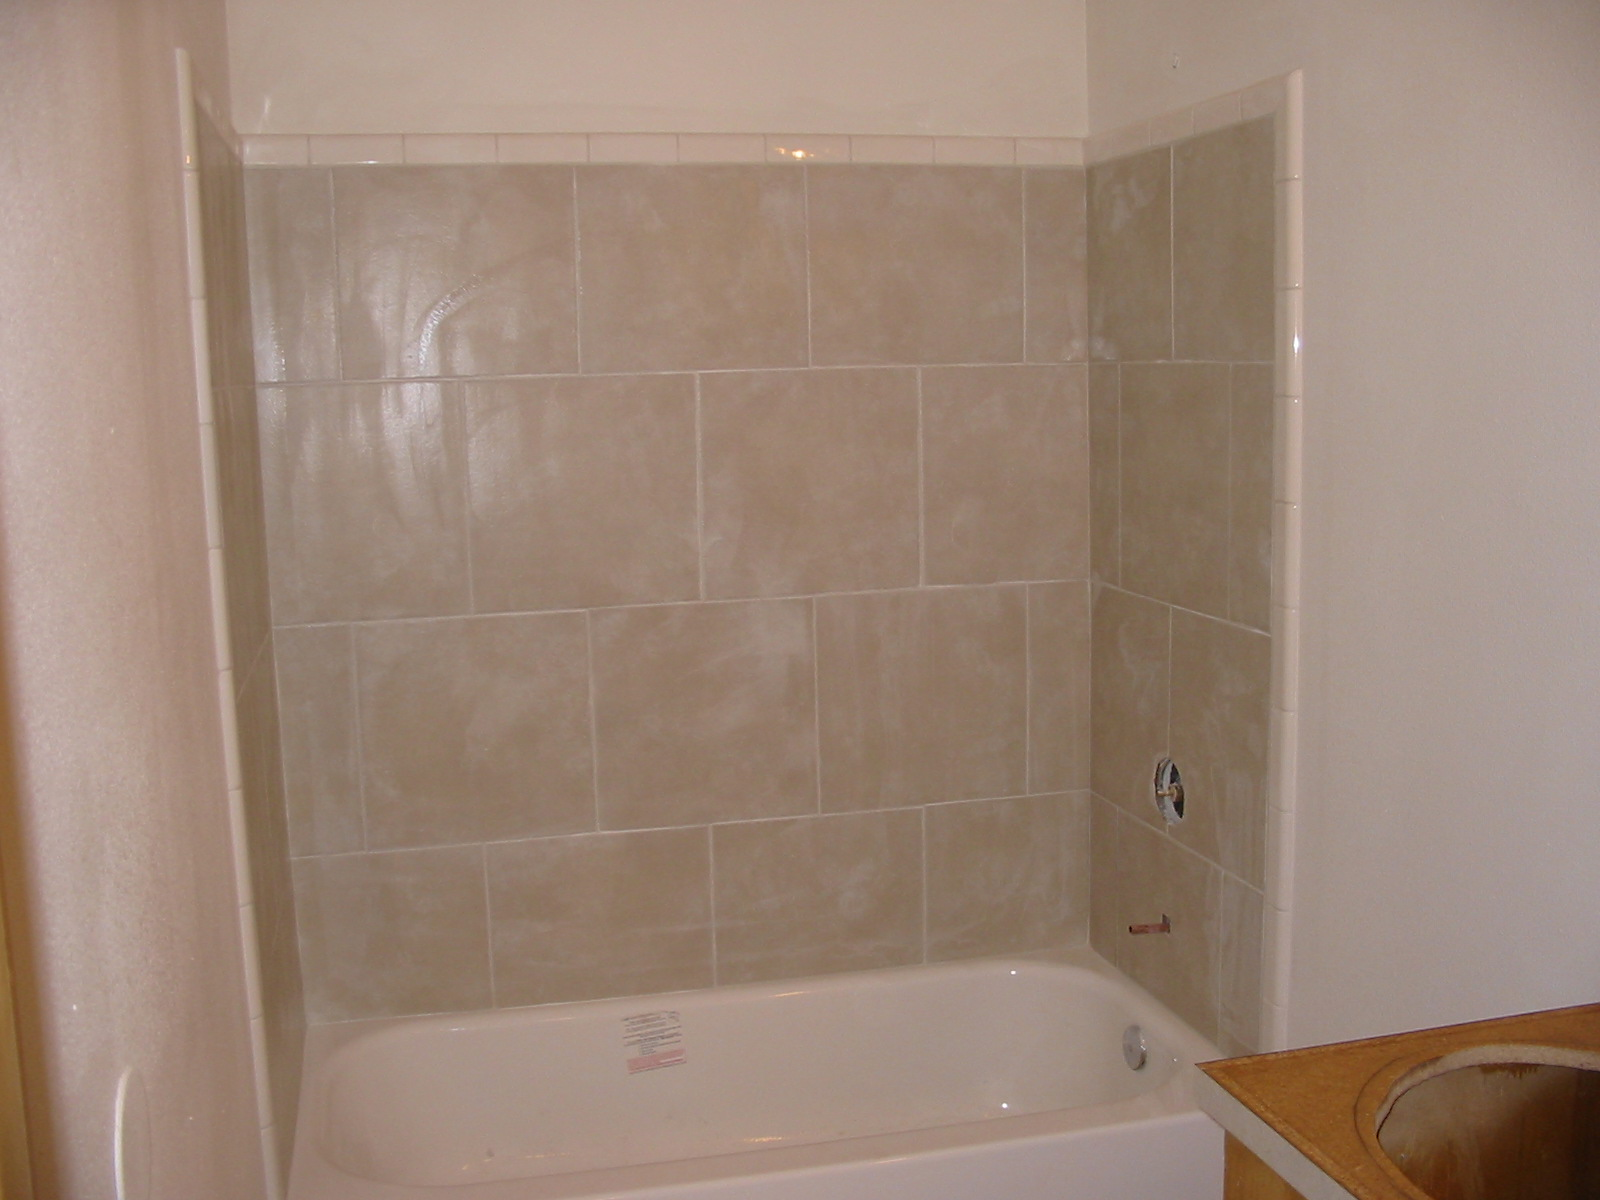 Bathroom remodeling logans residential maintenance for Bath remodel vancouver wa